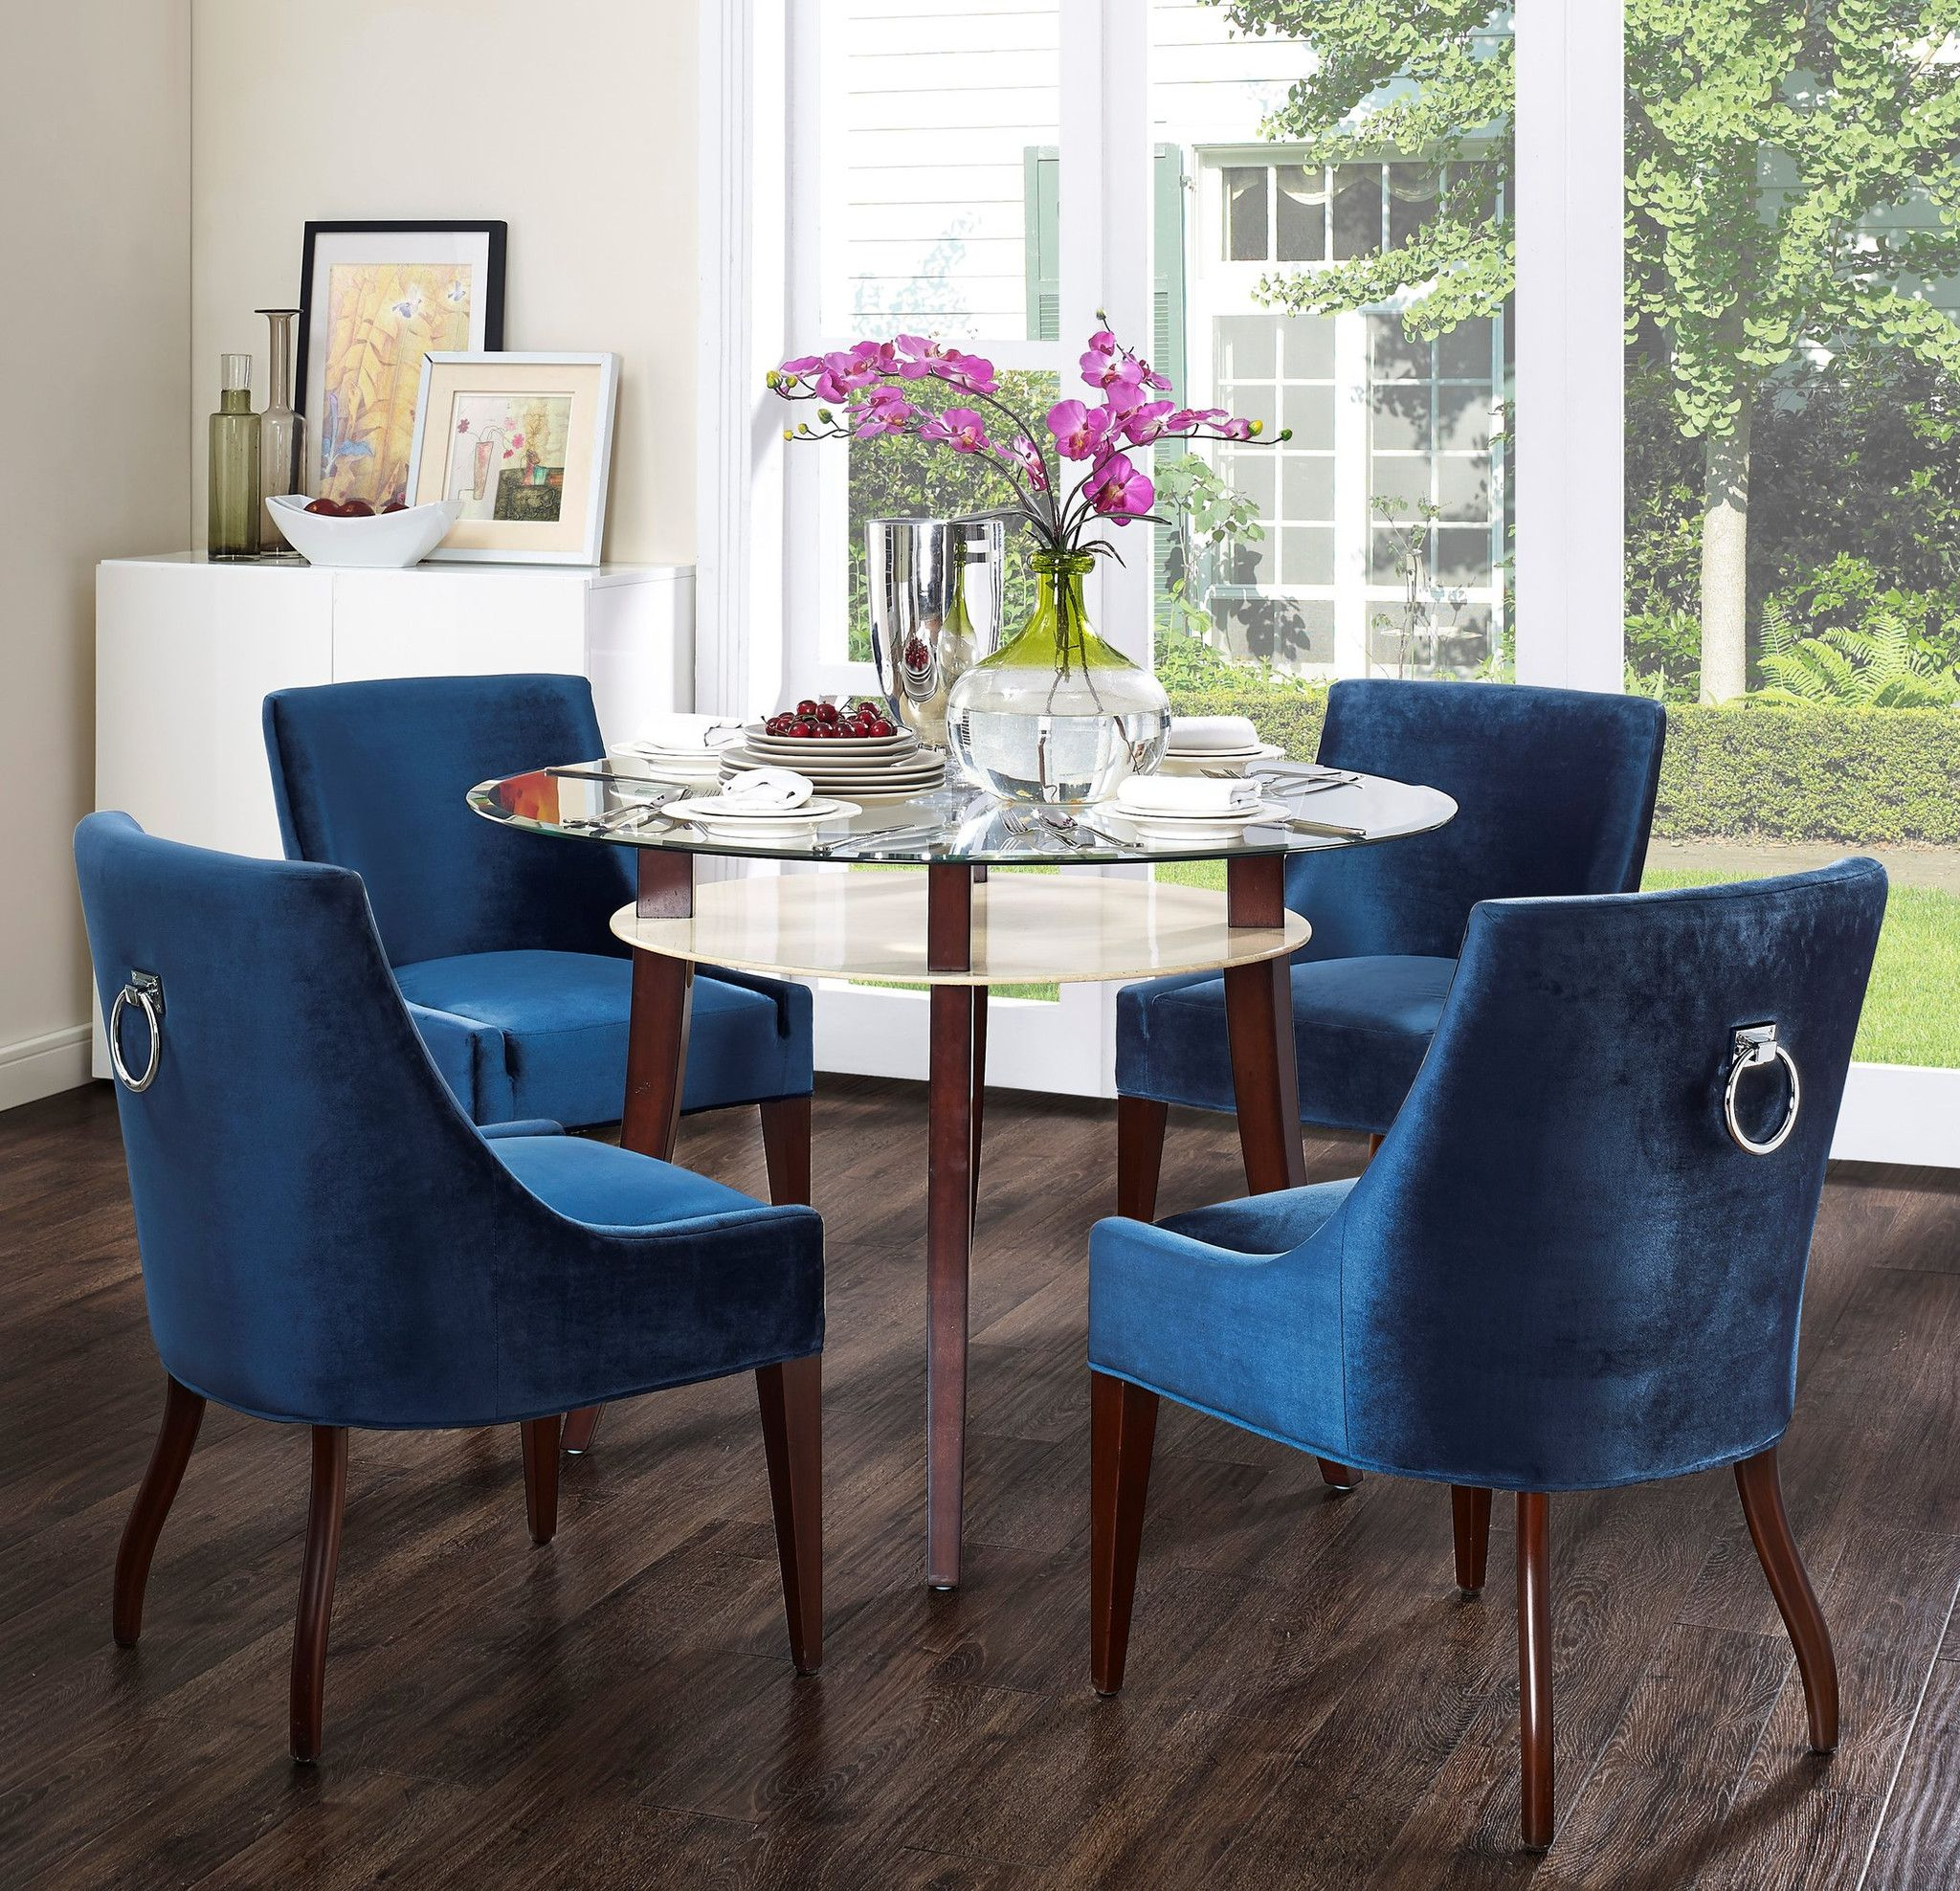 Tov Furniture Modern Dover Blue Velvet Dining Chair Tov